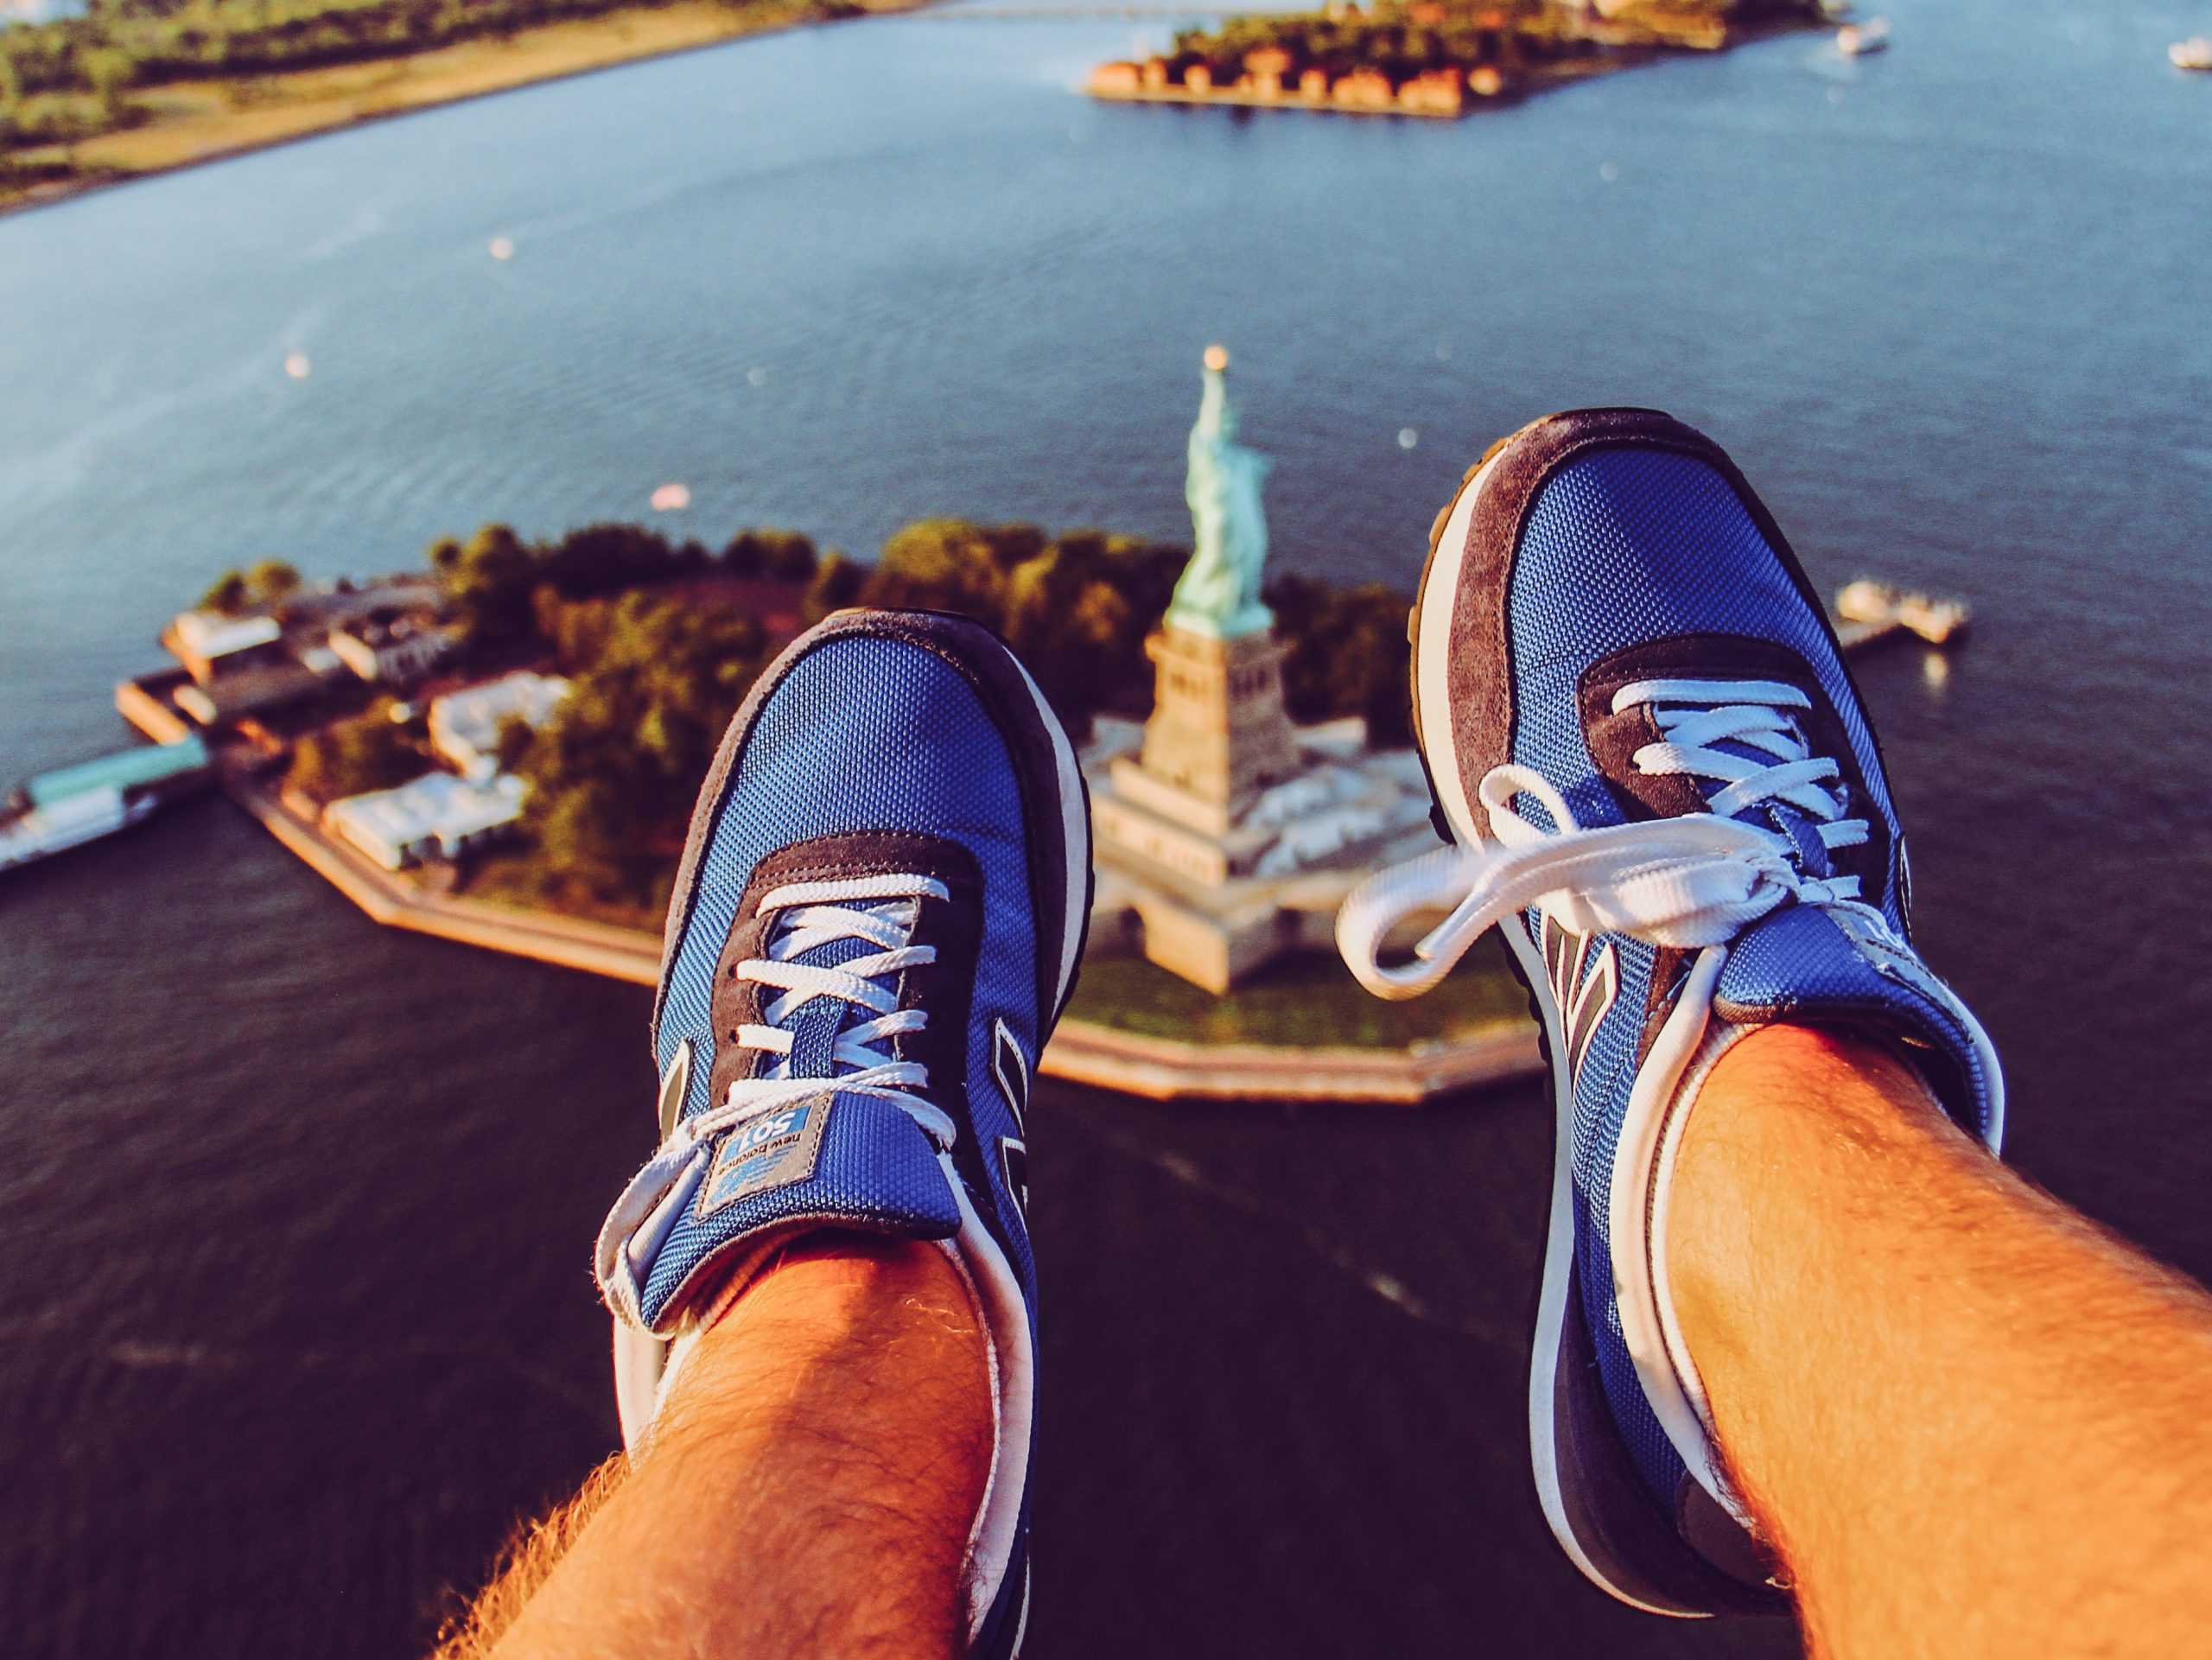 A sky eye view of NYC's Statue of Liberty, taken from the perspective of a man with the bottom of his legs in the foreground.